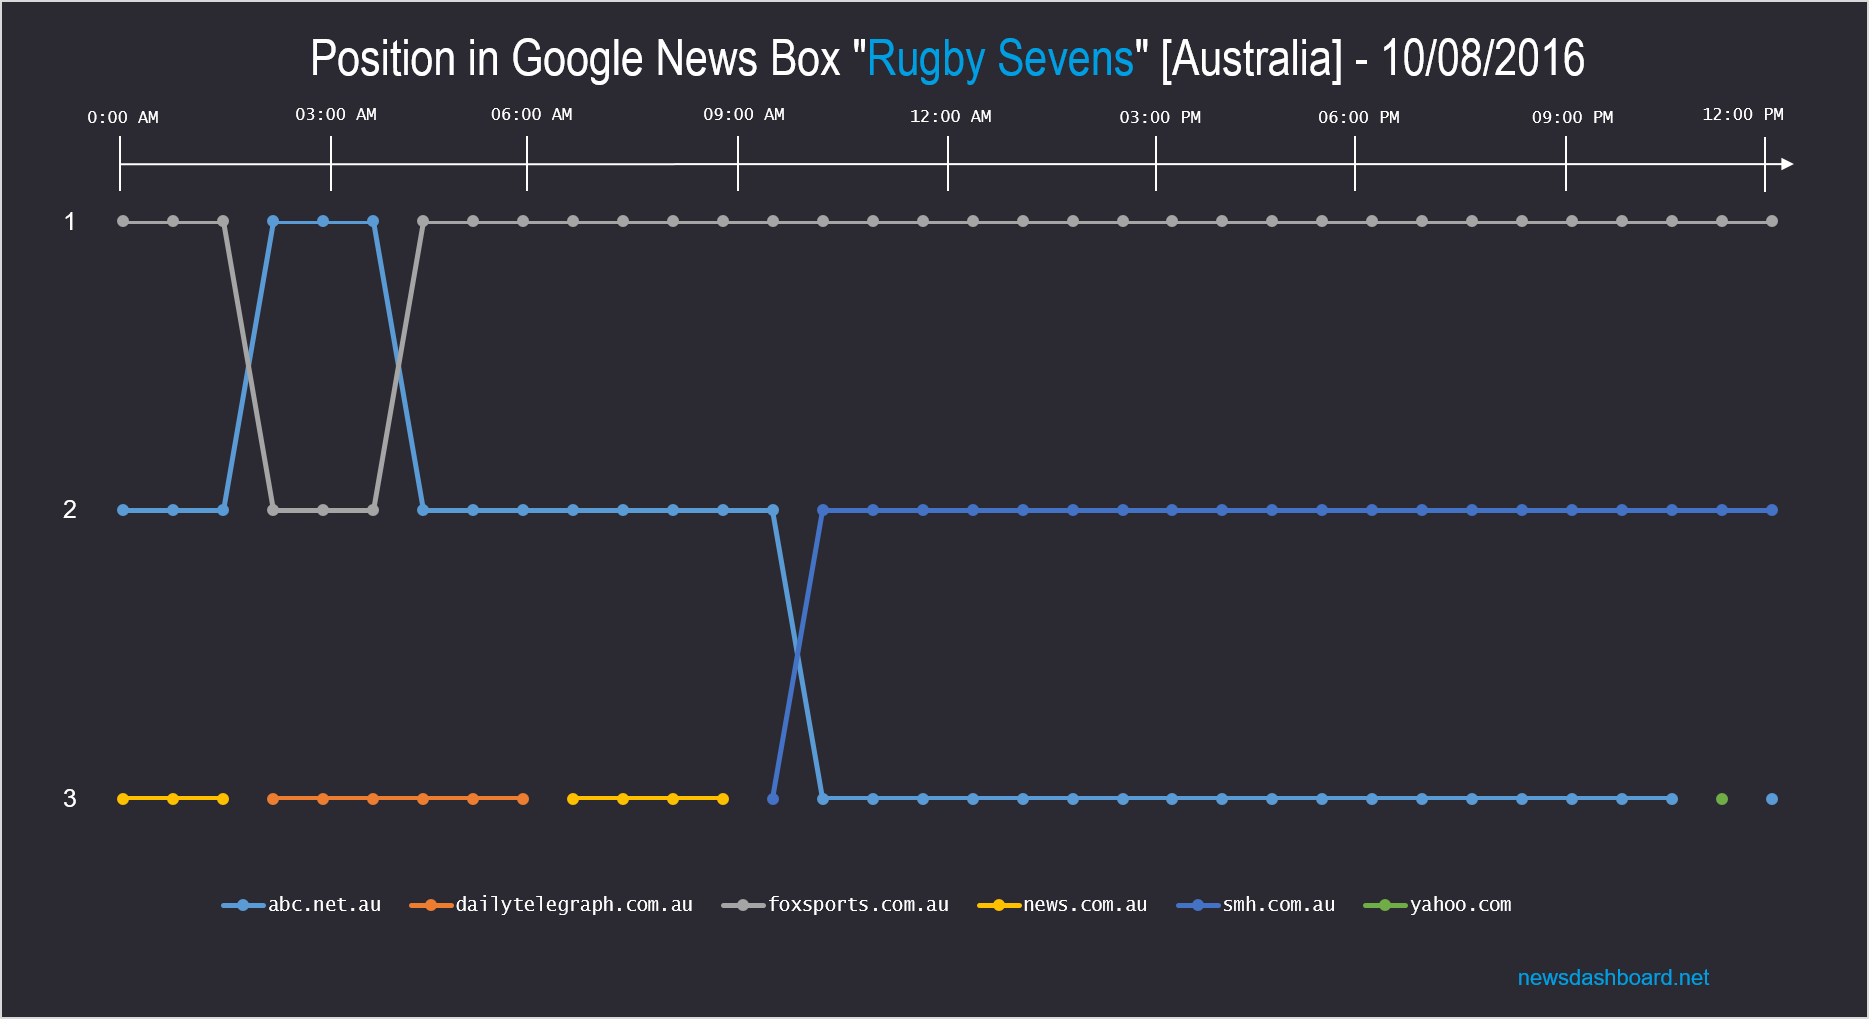 At the 10th of August foxsports.com was most of the time ranking first position in the Google News Box for Rugby Sevens